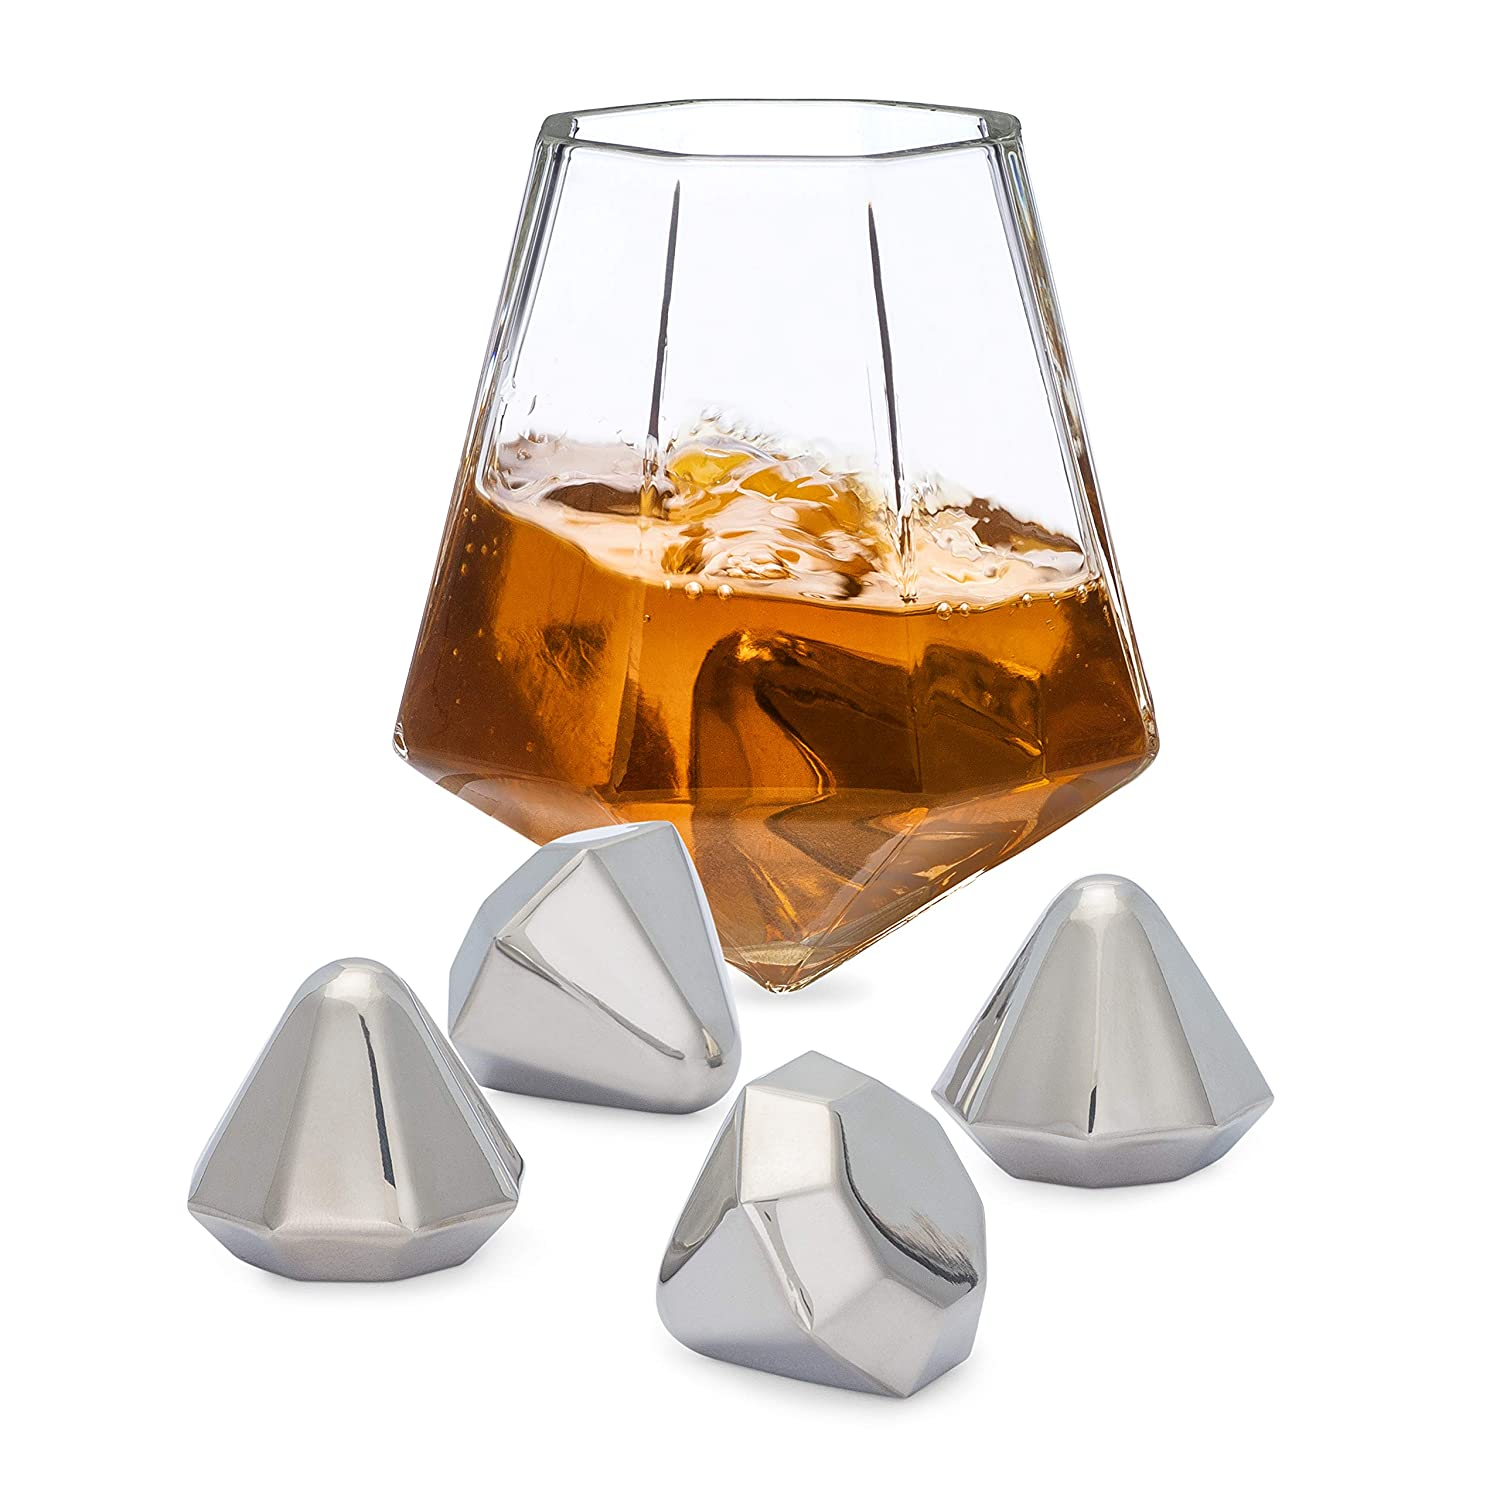 Dragon Glassware Diamond Whiskey Stones, Reusable Stainless Steel with Velvet Carrying Pouch - Set of 4